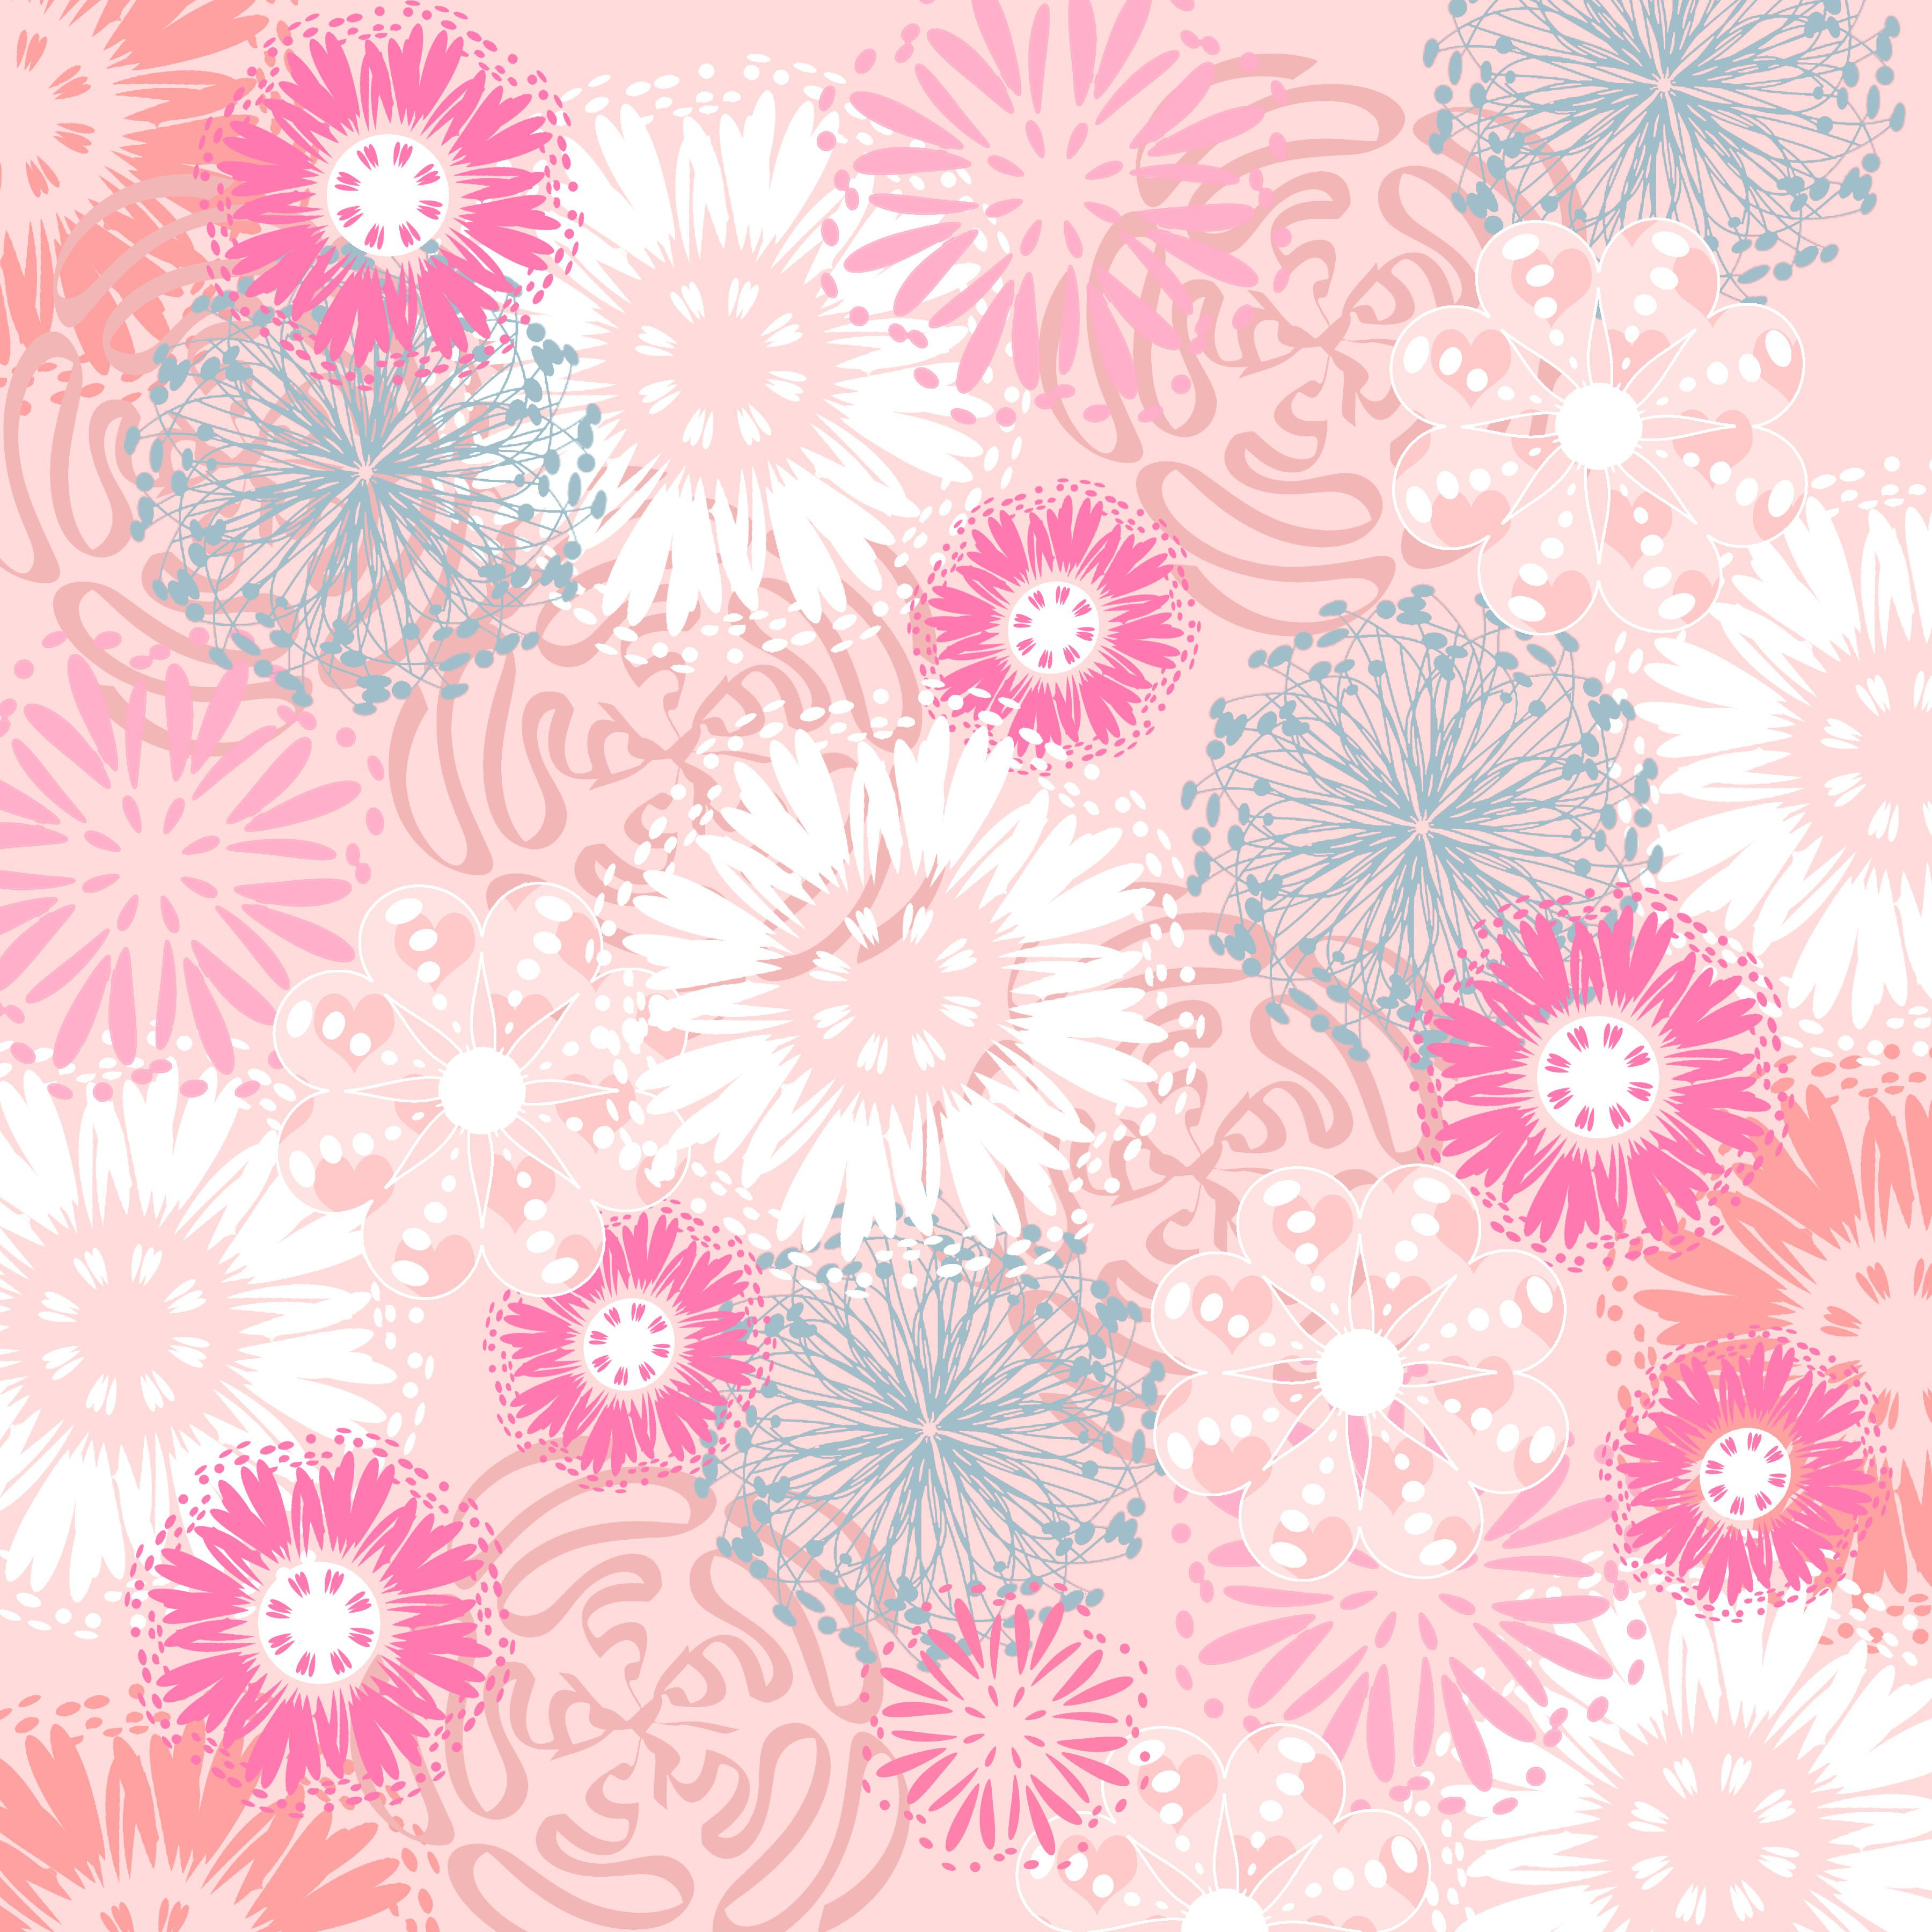 Free+Printable+Scrapbook+Paper | Scrapbook Paper | Pinterest - Free Printable Background Pages